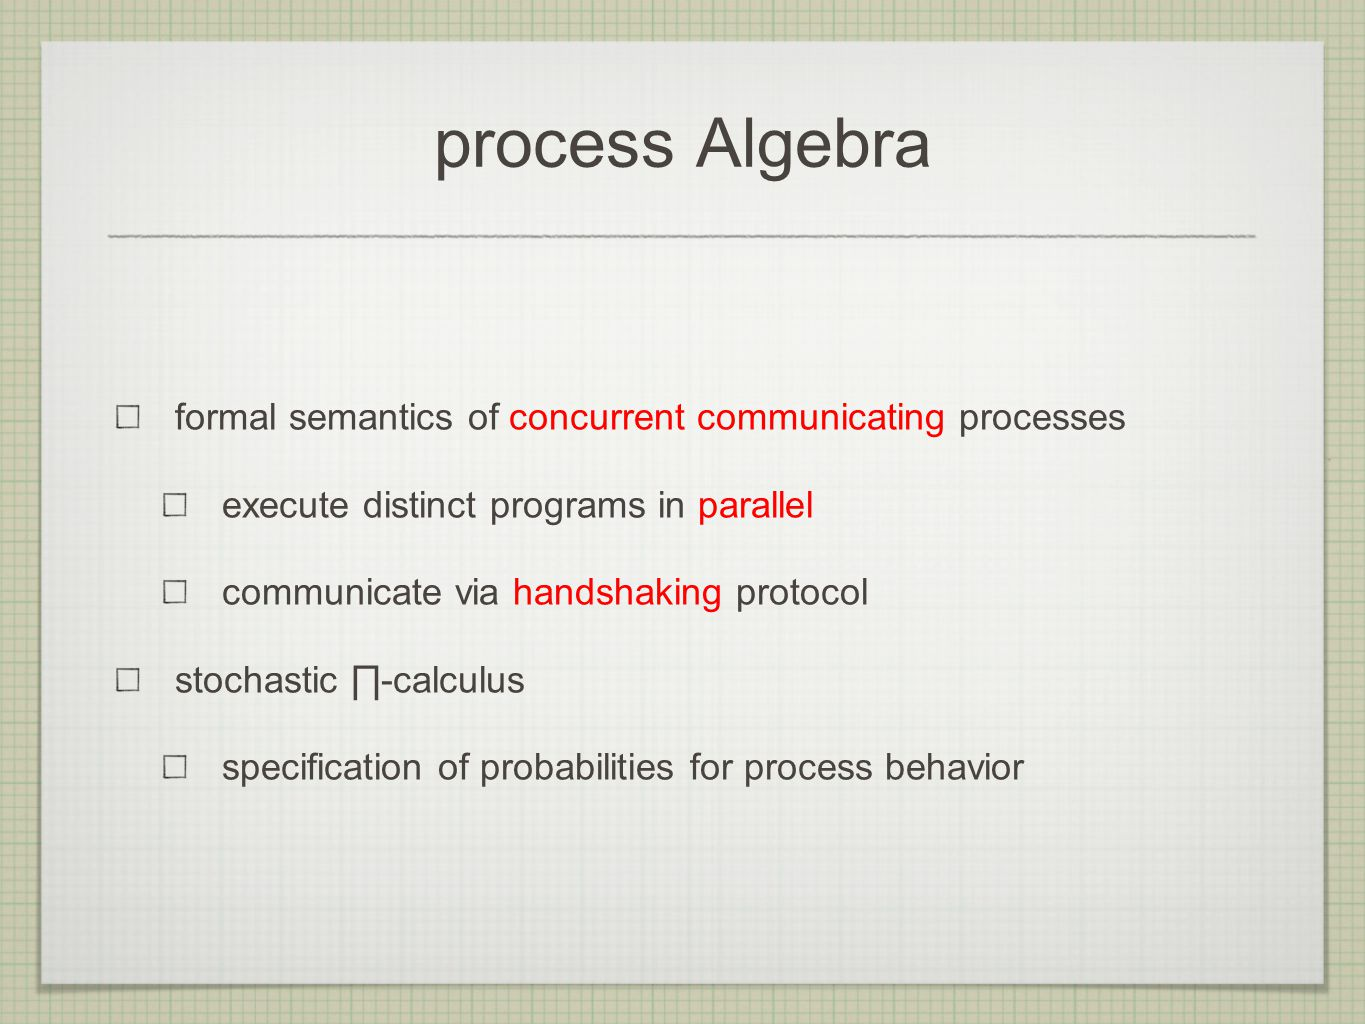 process Algebra formal semantics of concurrent communicating processes execute distinct programs in parallel communicate via handshaking protocol stochastic ∏-calculus specification of probabilities for process behavior